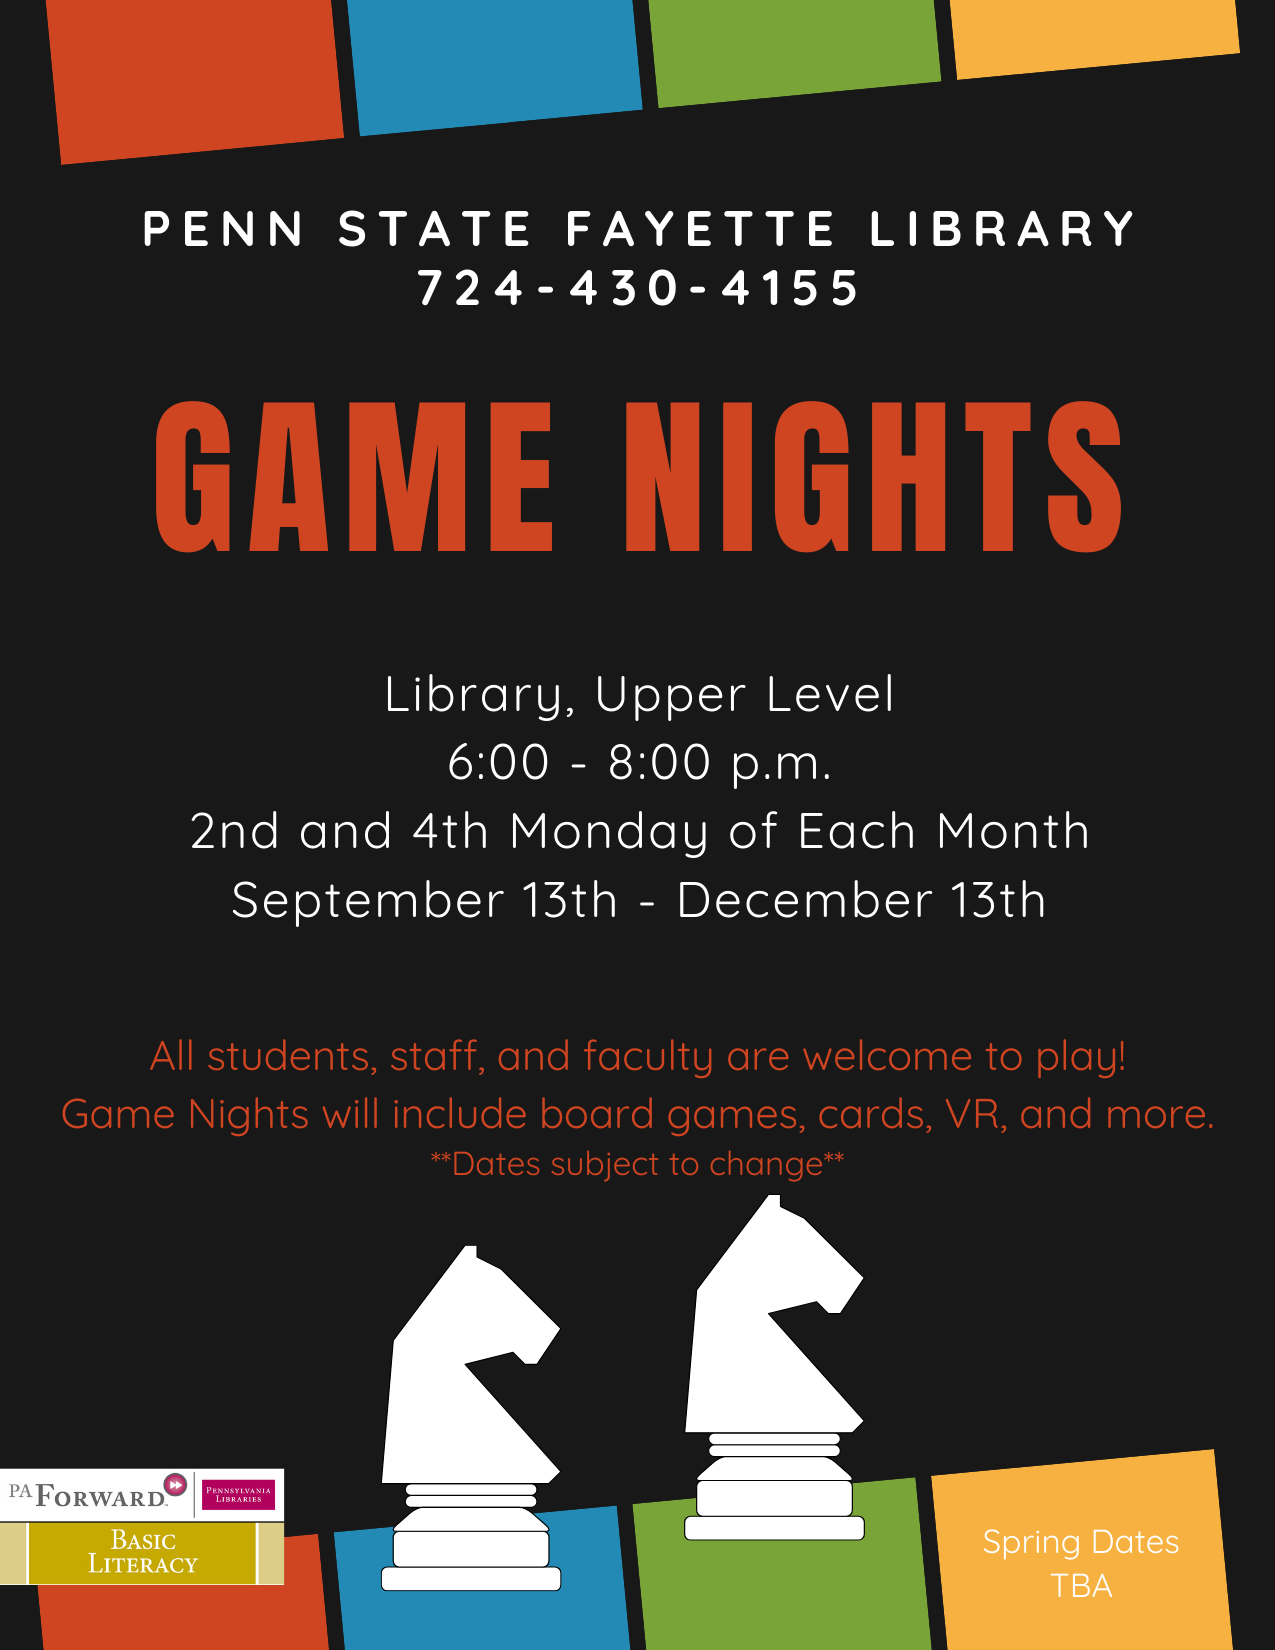 Flyer for the Library Game Night events that includes multi-colored squares and gambe board pieces